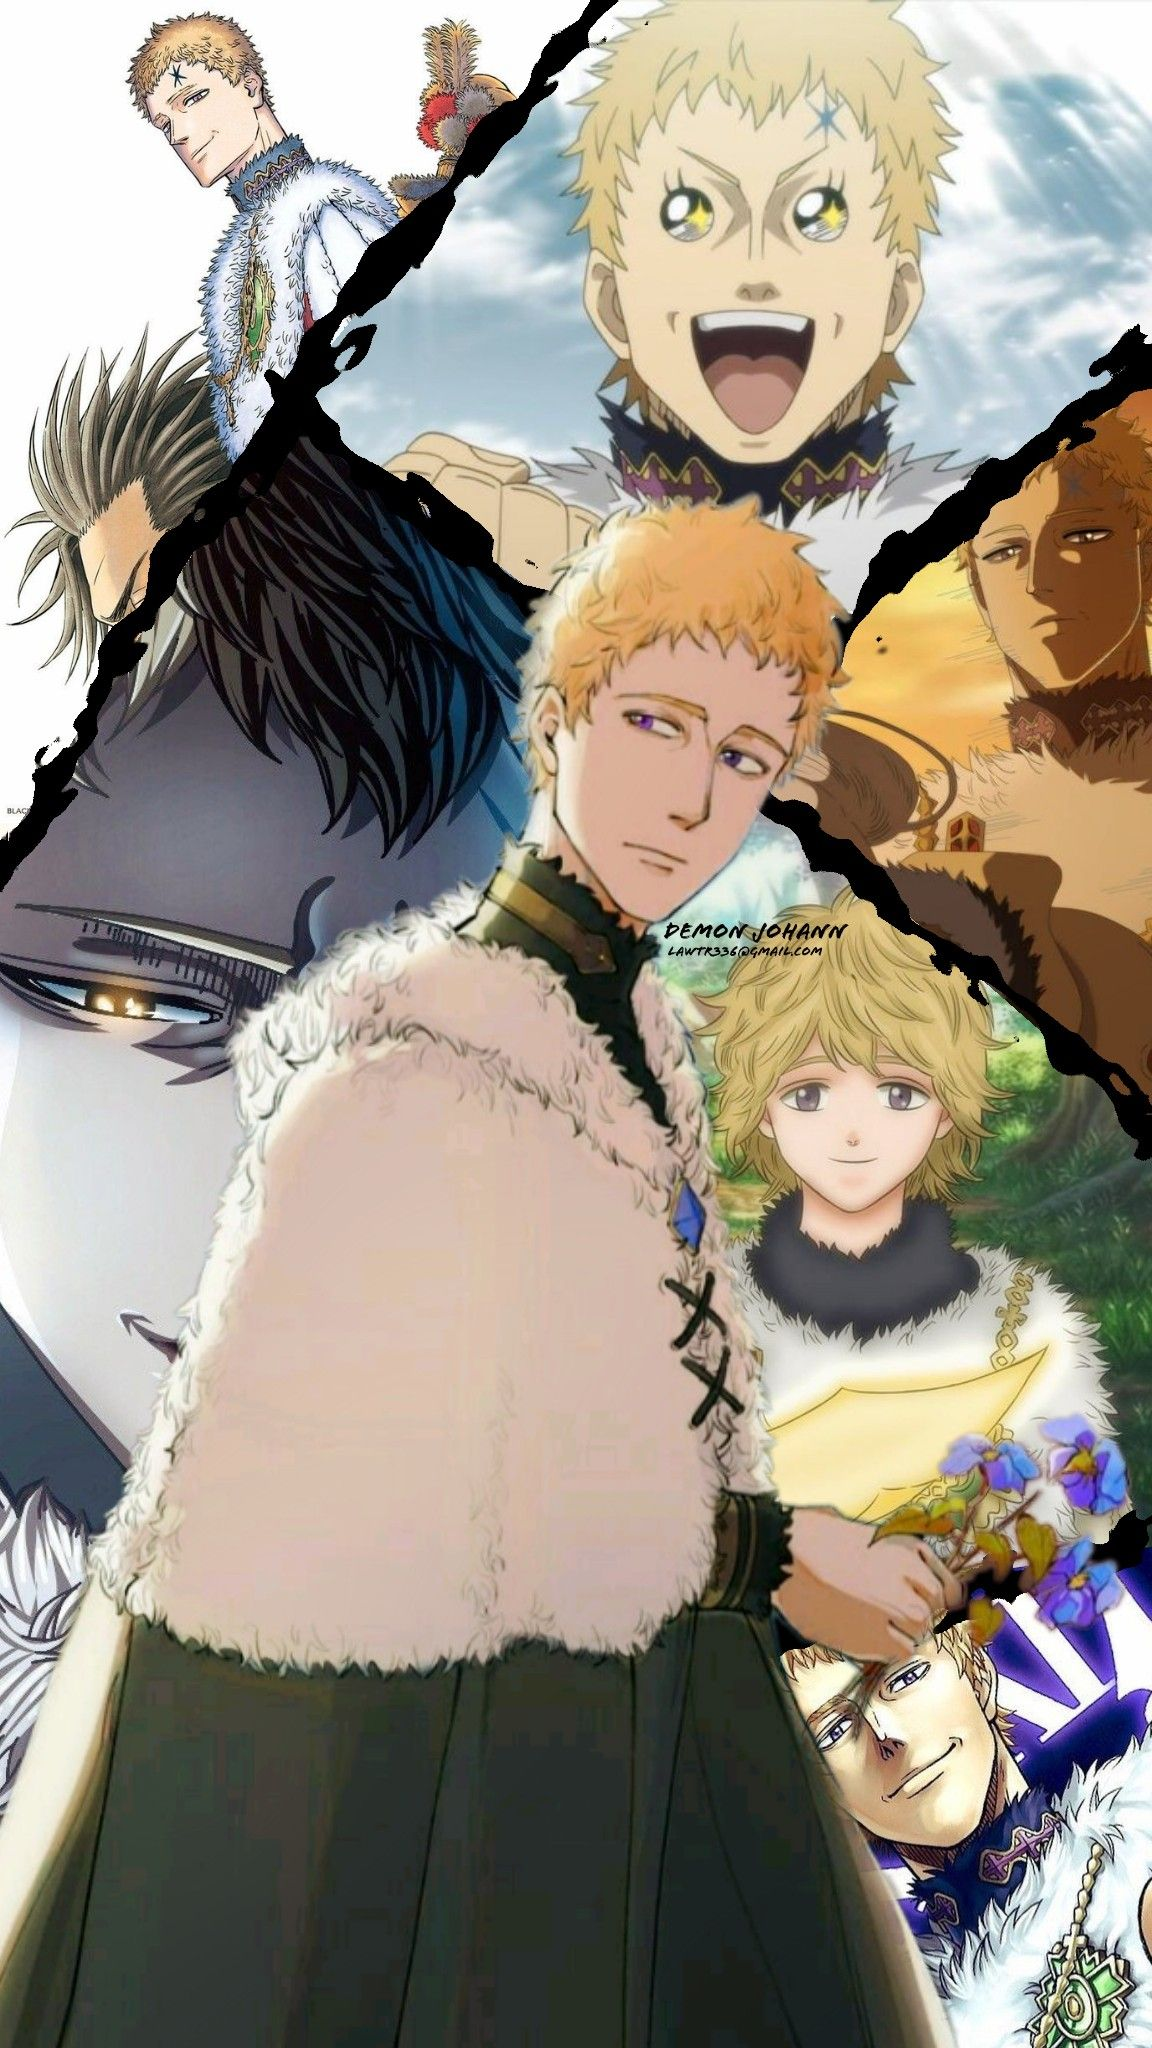 Julius Novachrono Black Clover Anime Cool Anime Backgrounds Anime Wallpaper Lift your spirits with funny jokes, trending memes, entertaining gifs, inspiring stories, viral videos, and so much more. julius novachrono black clover anime